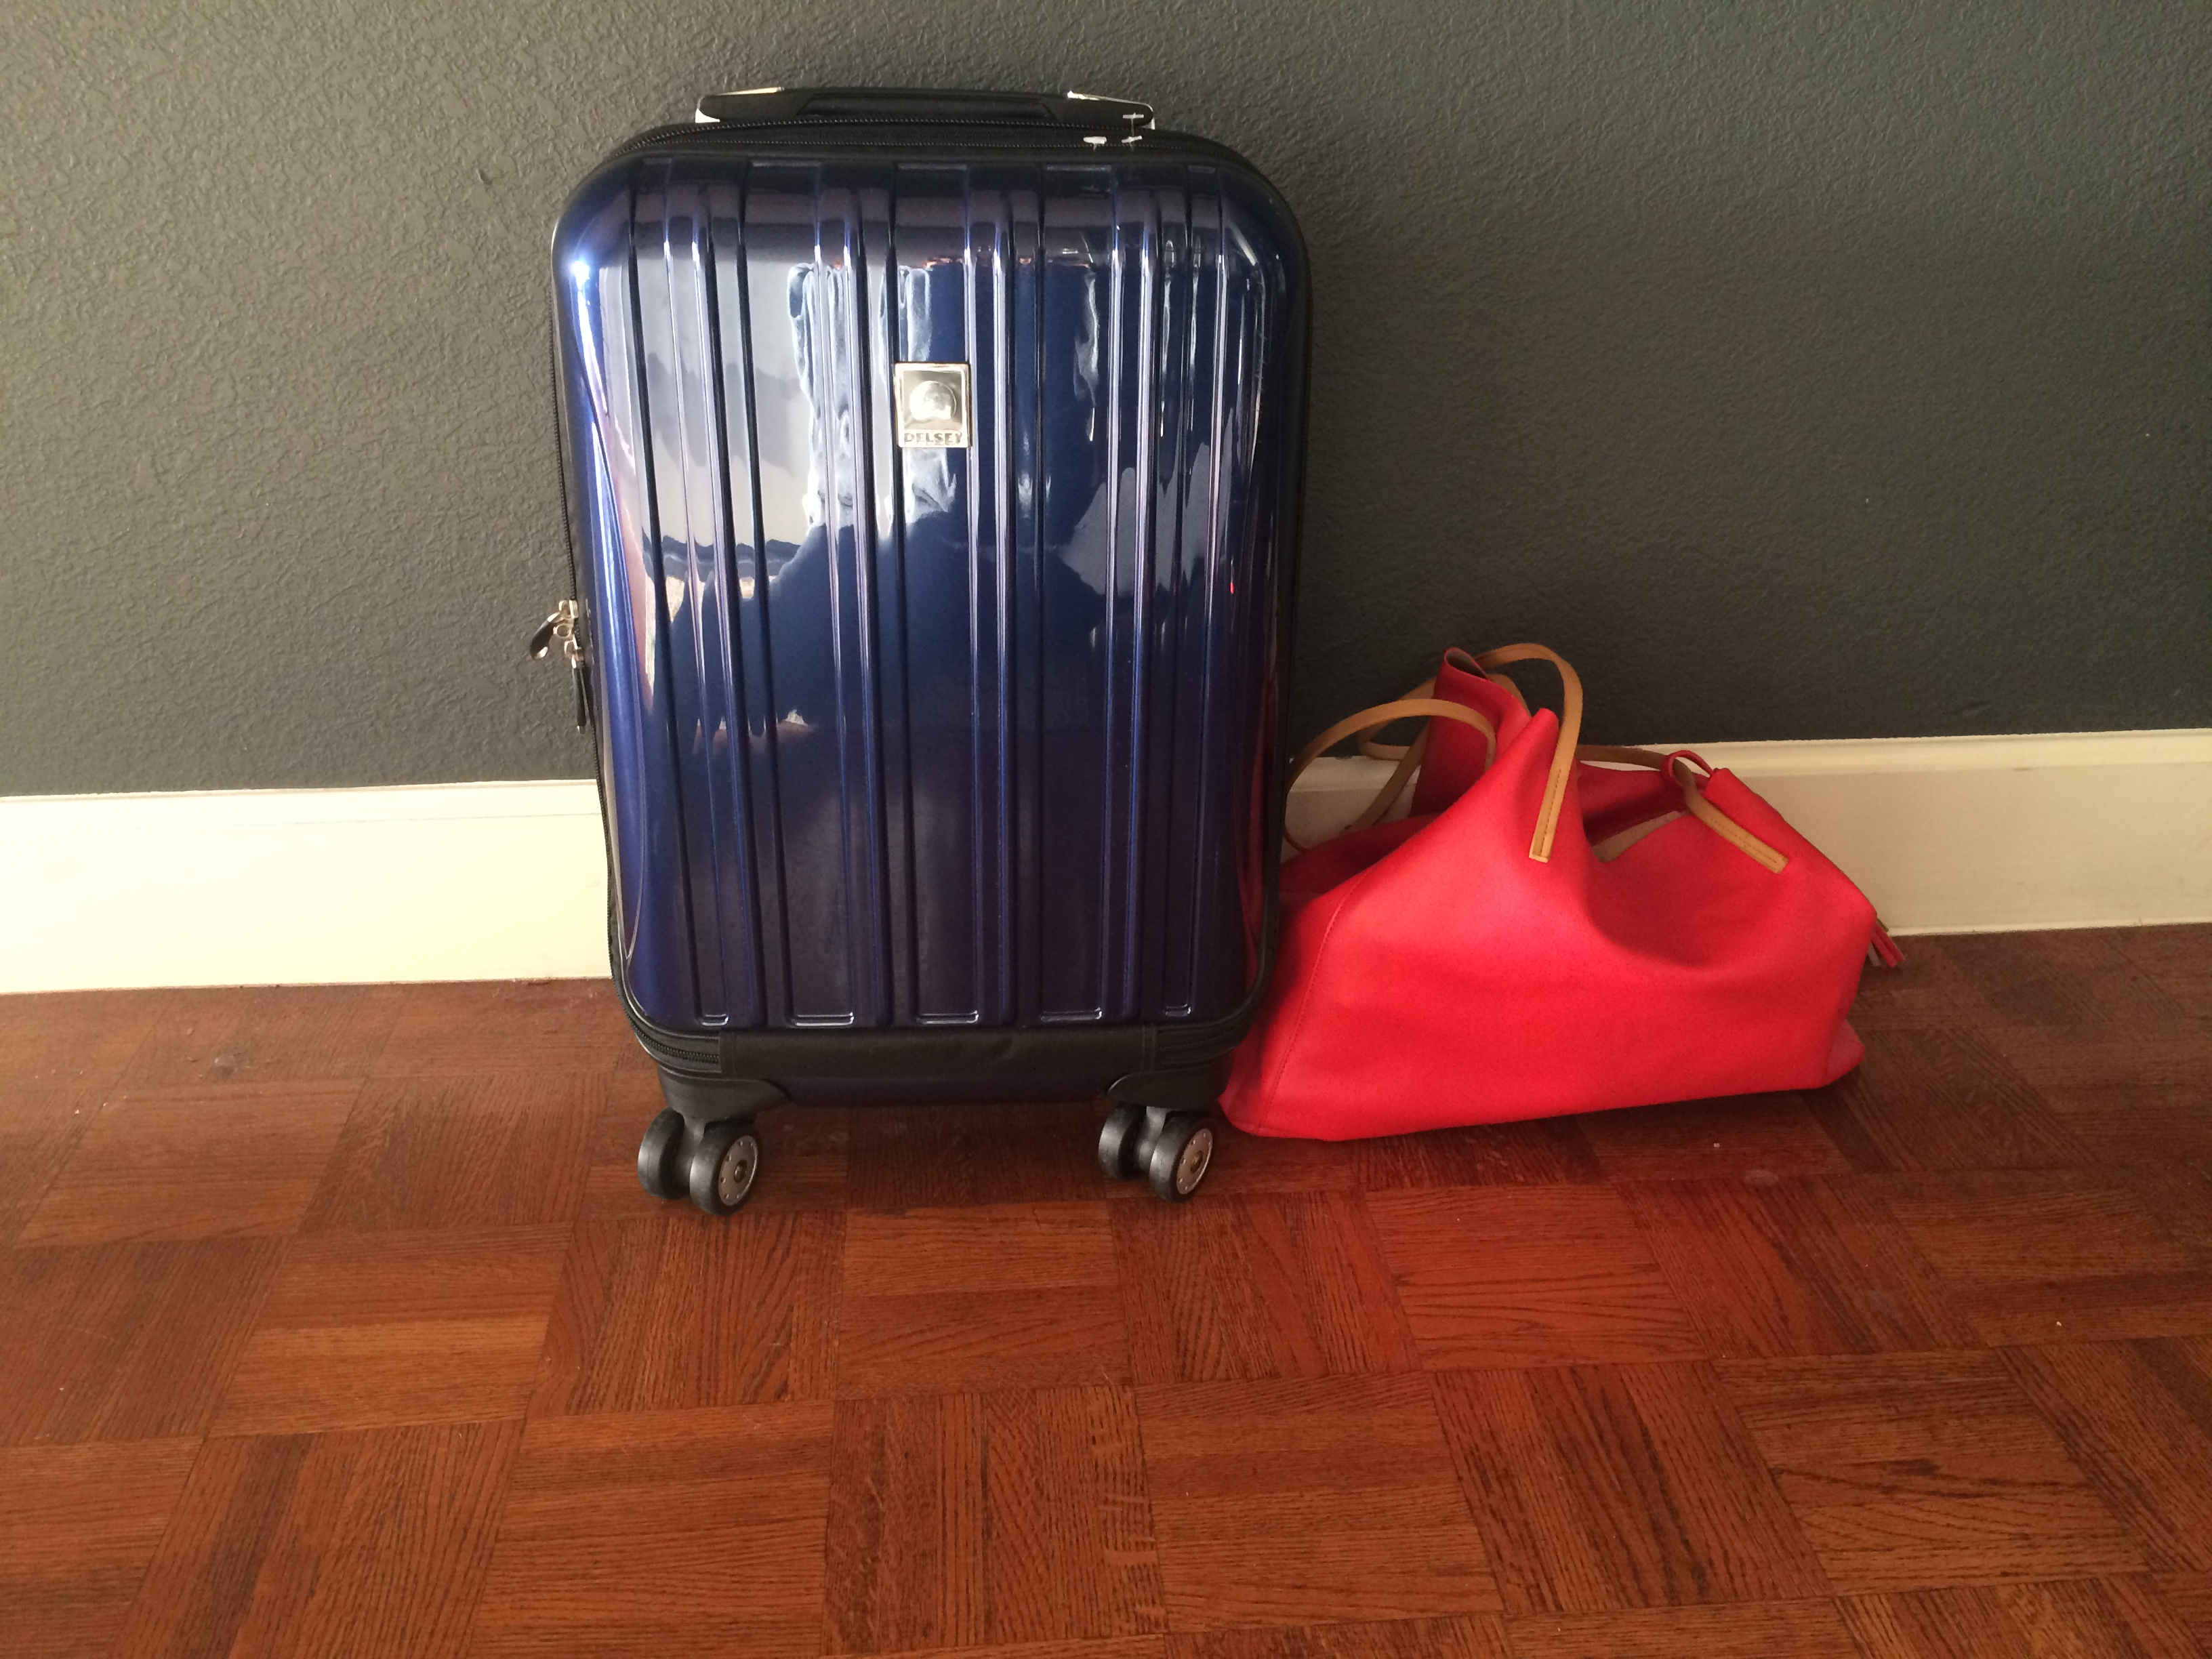 cd74f2ea29 Delsey Carry On Luggage Review: A Comprehensive Look At Its Pros and ...